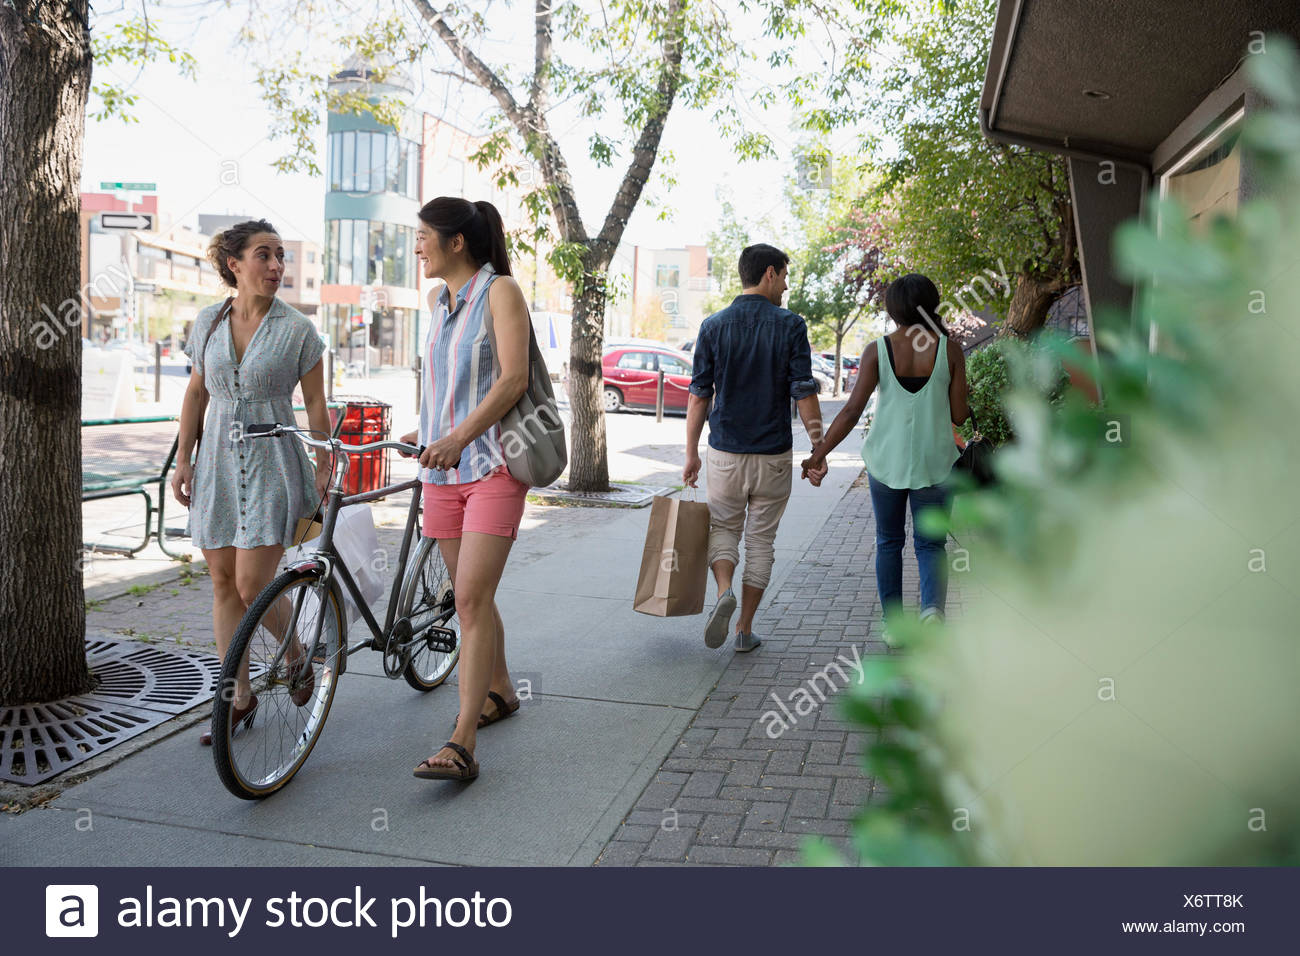 People walking with bicycle and shopping bags on urban sidewalk - Stock Image